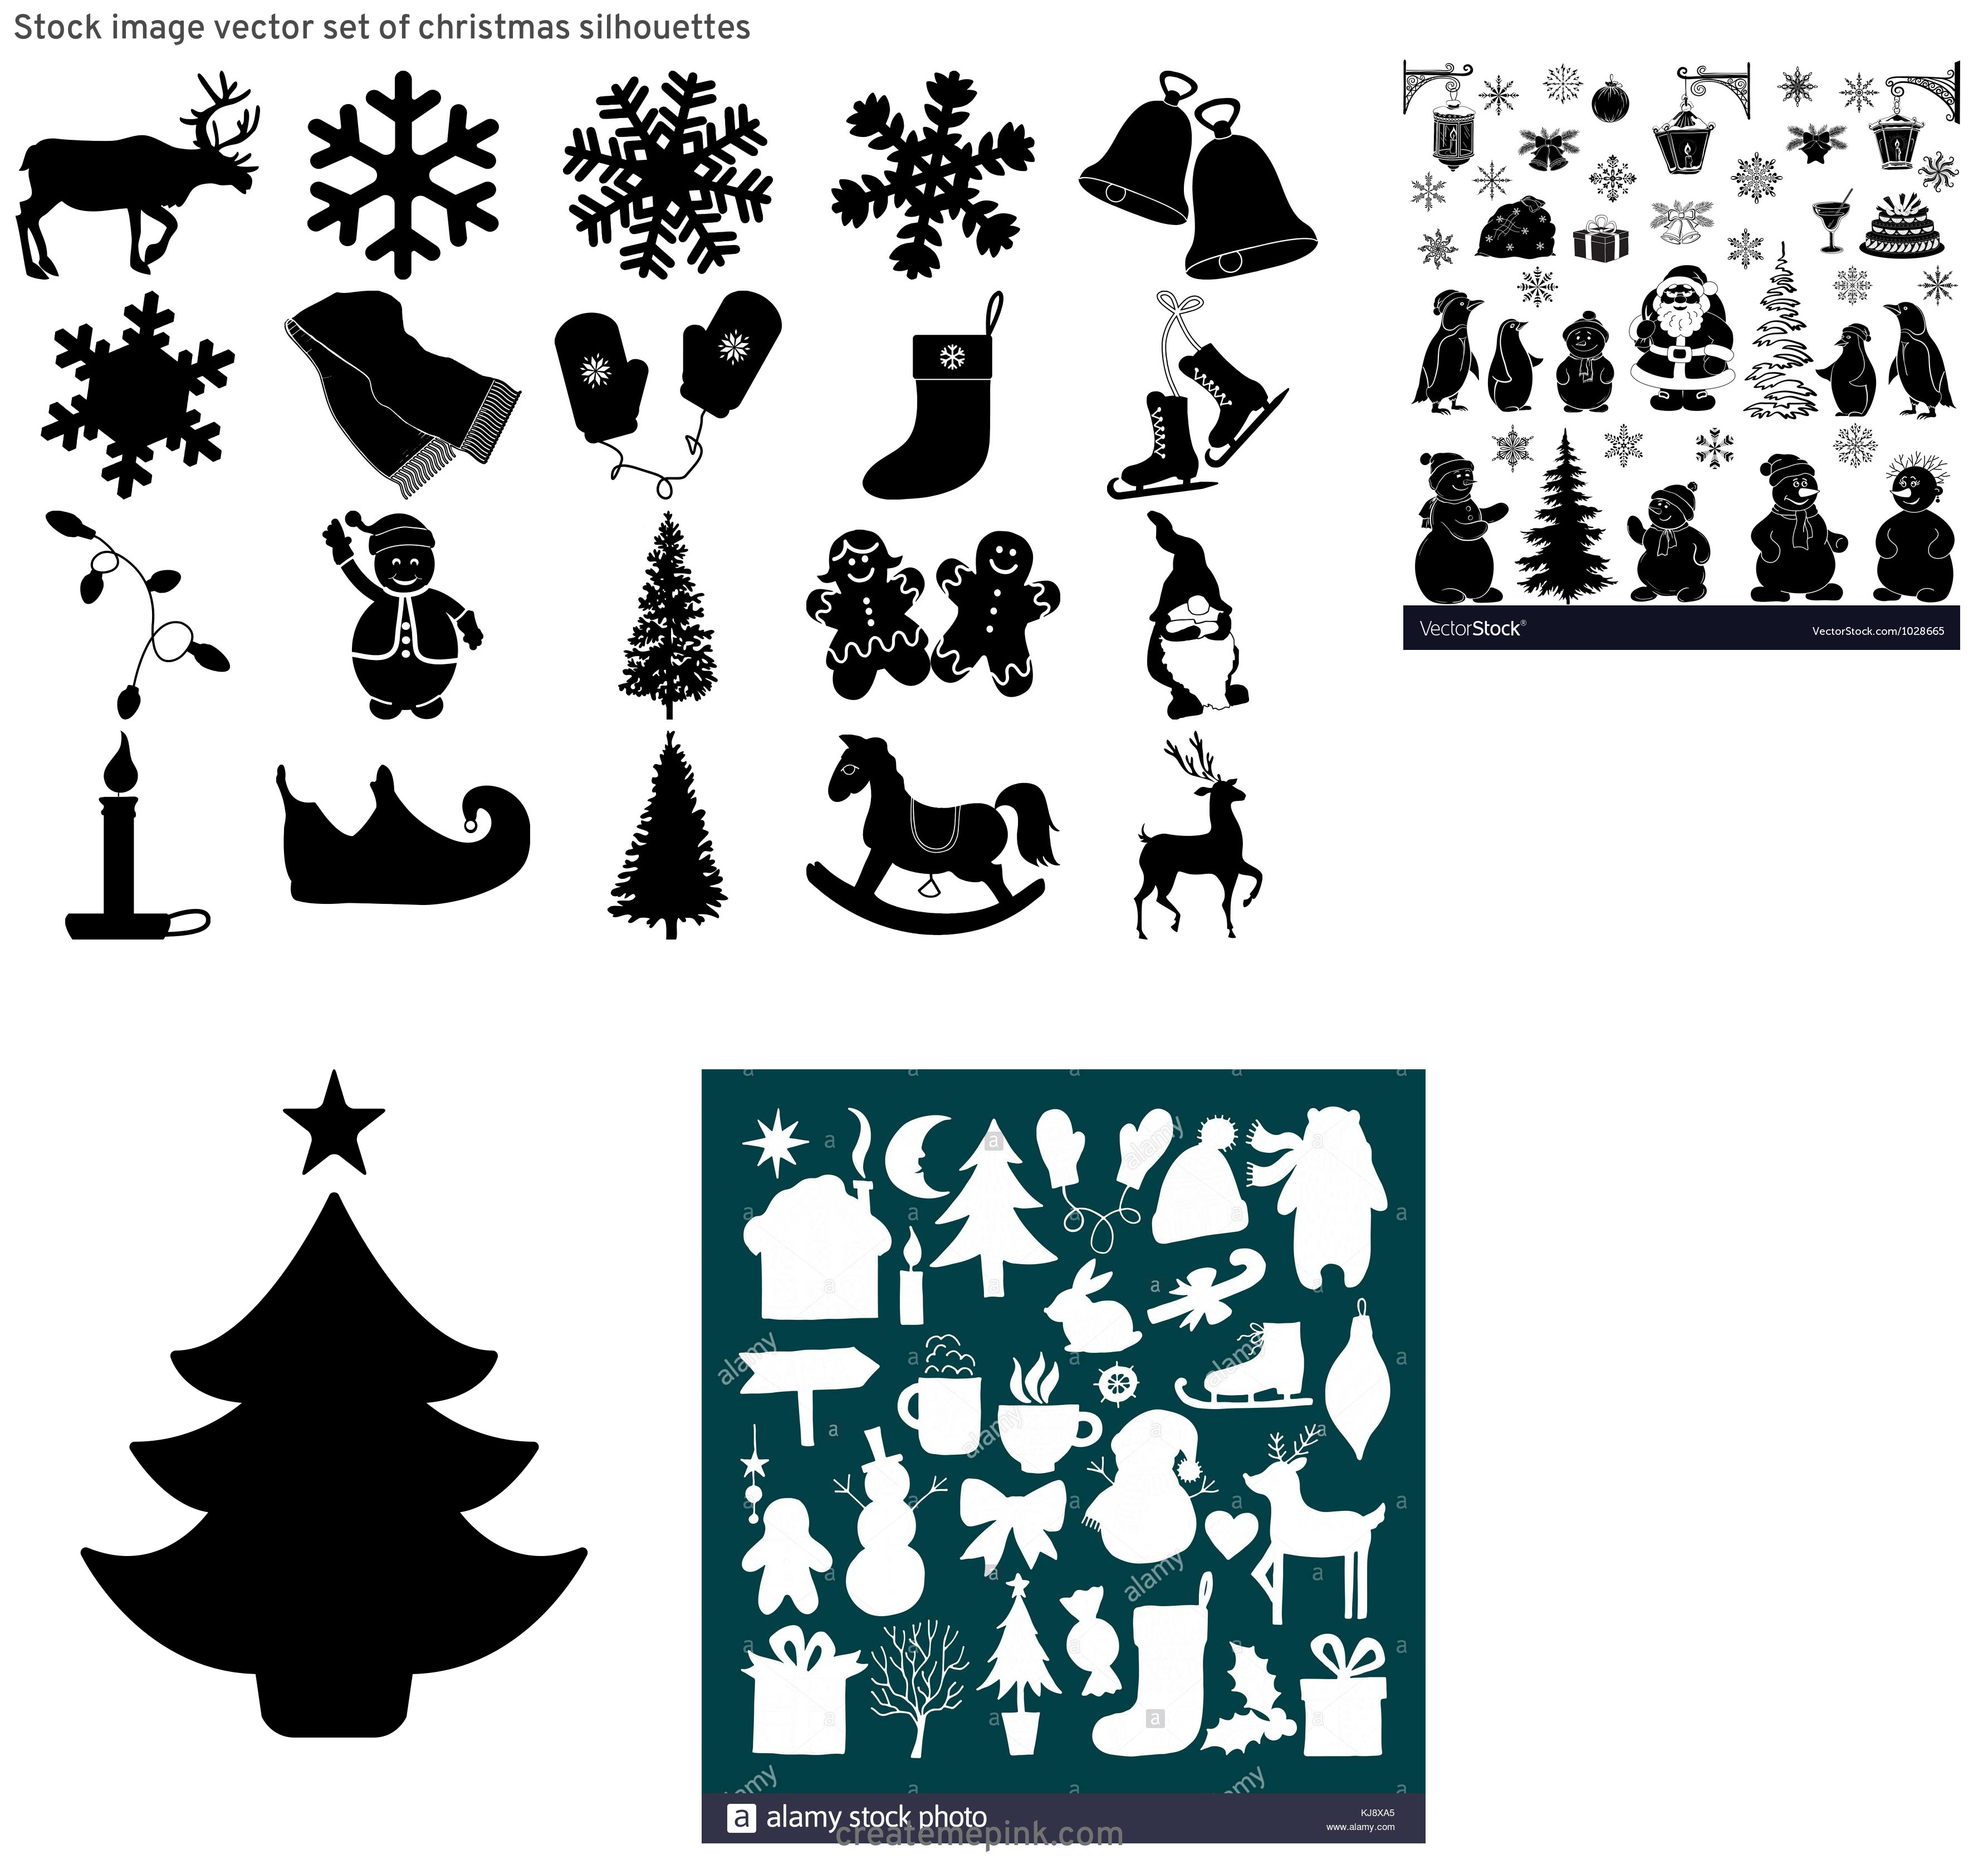 Christmas Silohette Vector: Stock Image Vector Set Of Christmas Silhouettes